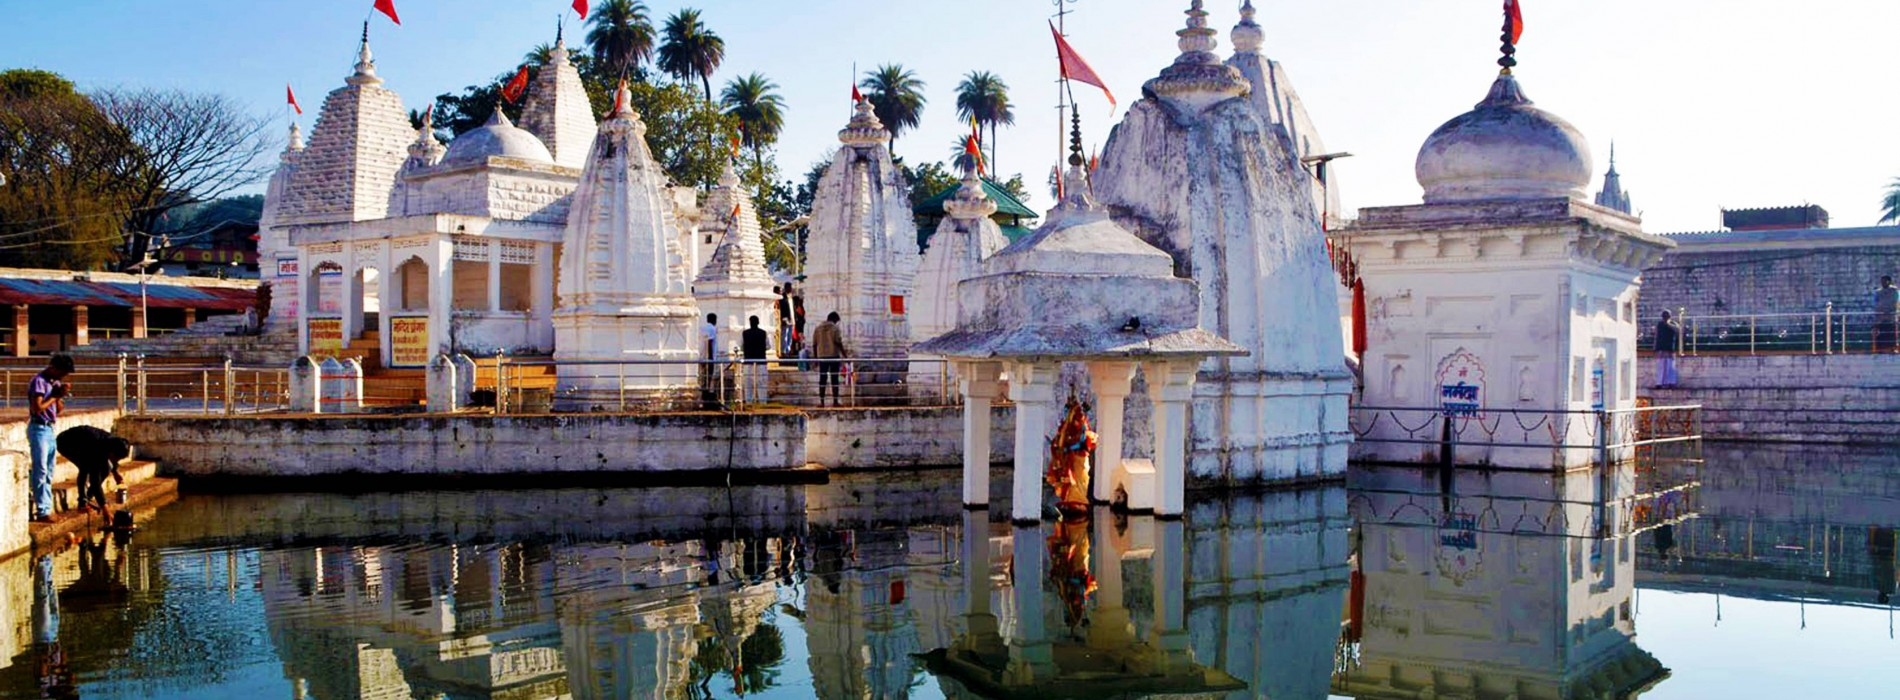 Madhya Pradesh Tourism Hosts Its First Virtual Road Show